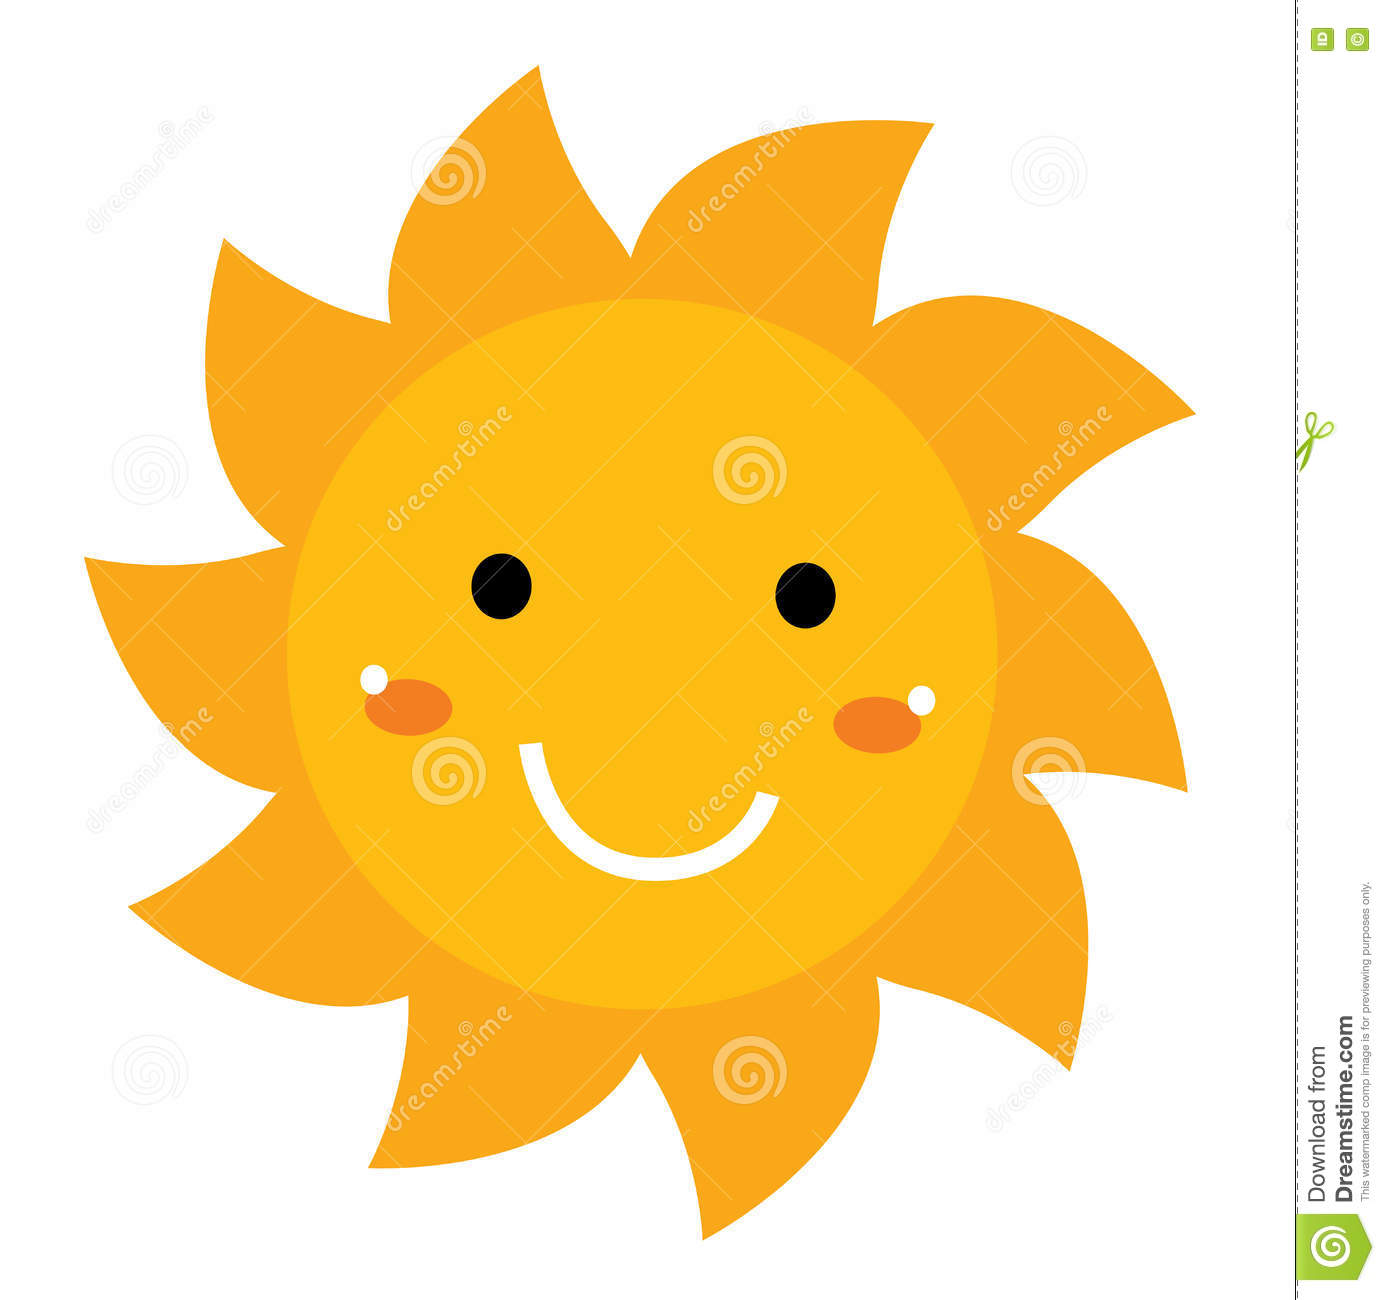 pretty smiling sun clipart isolated on white stock illustration rh dreamstime com smiling sun with sunglasses clipart Smiling Sun Clip Art Black and White